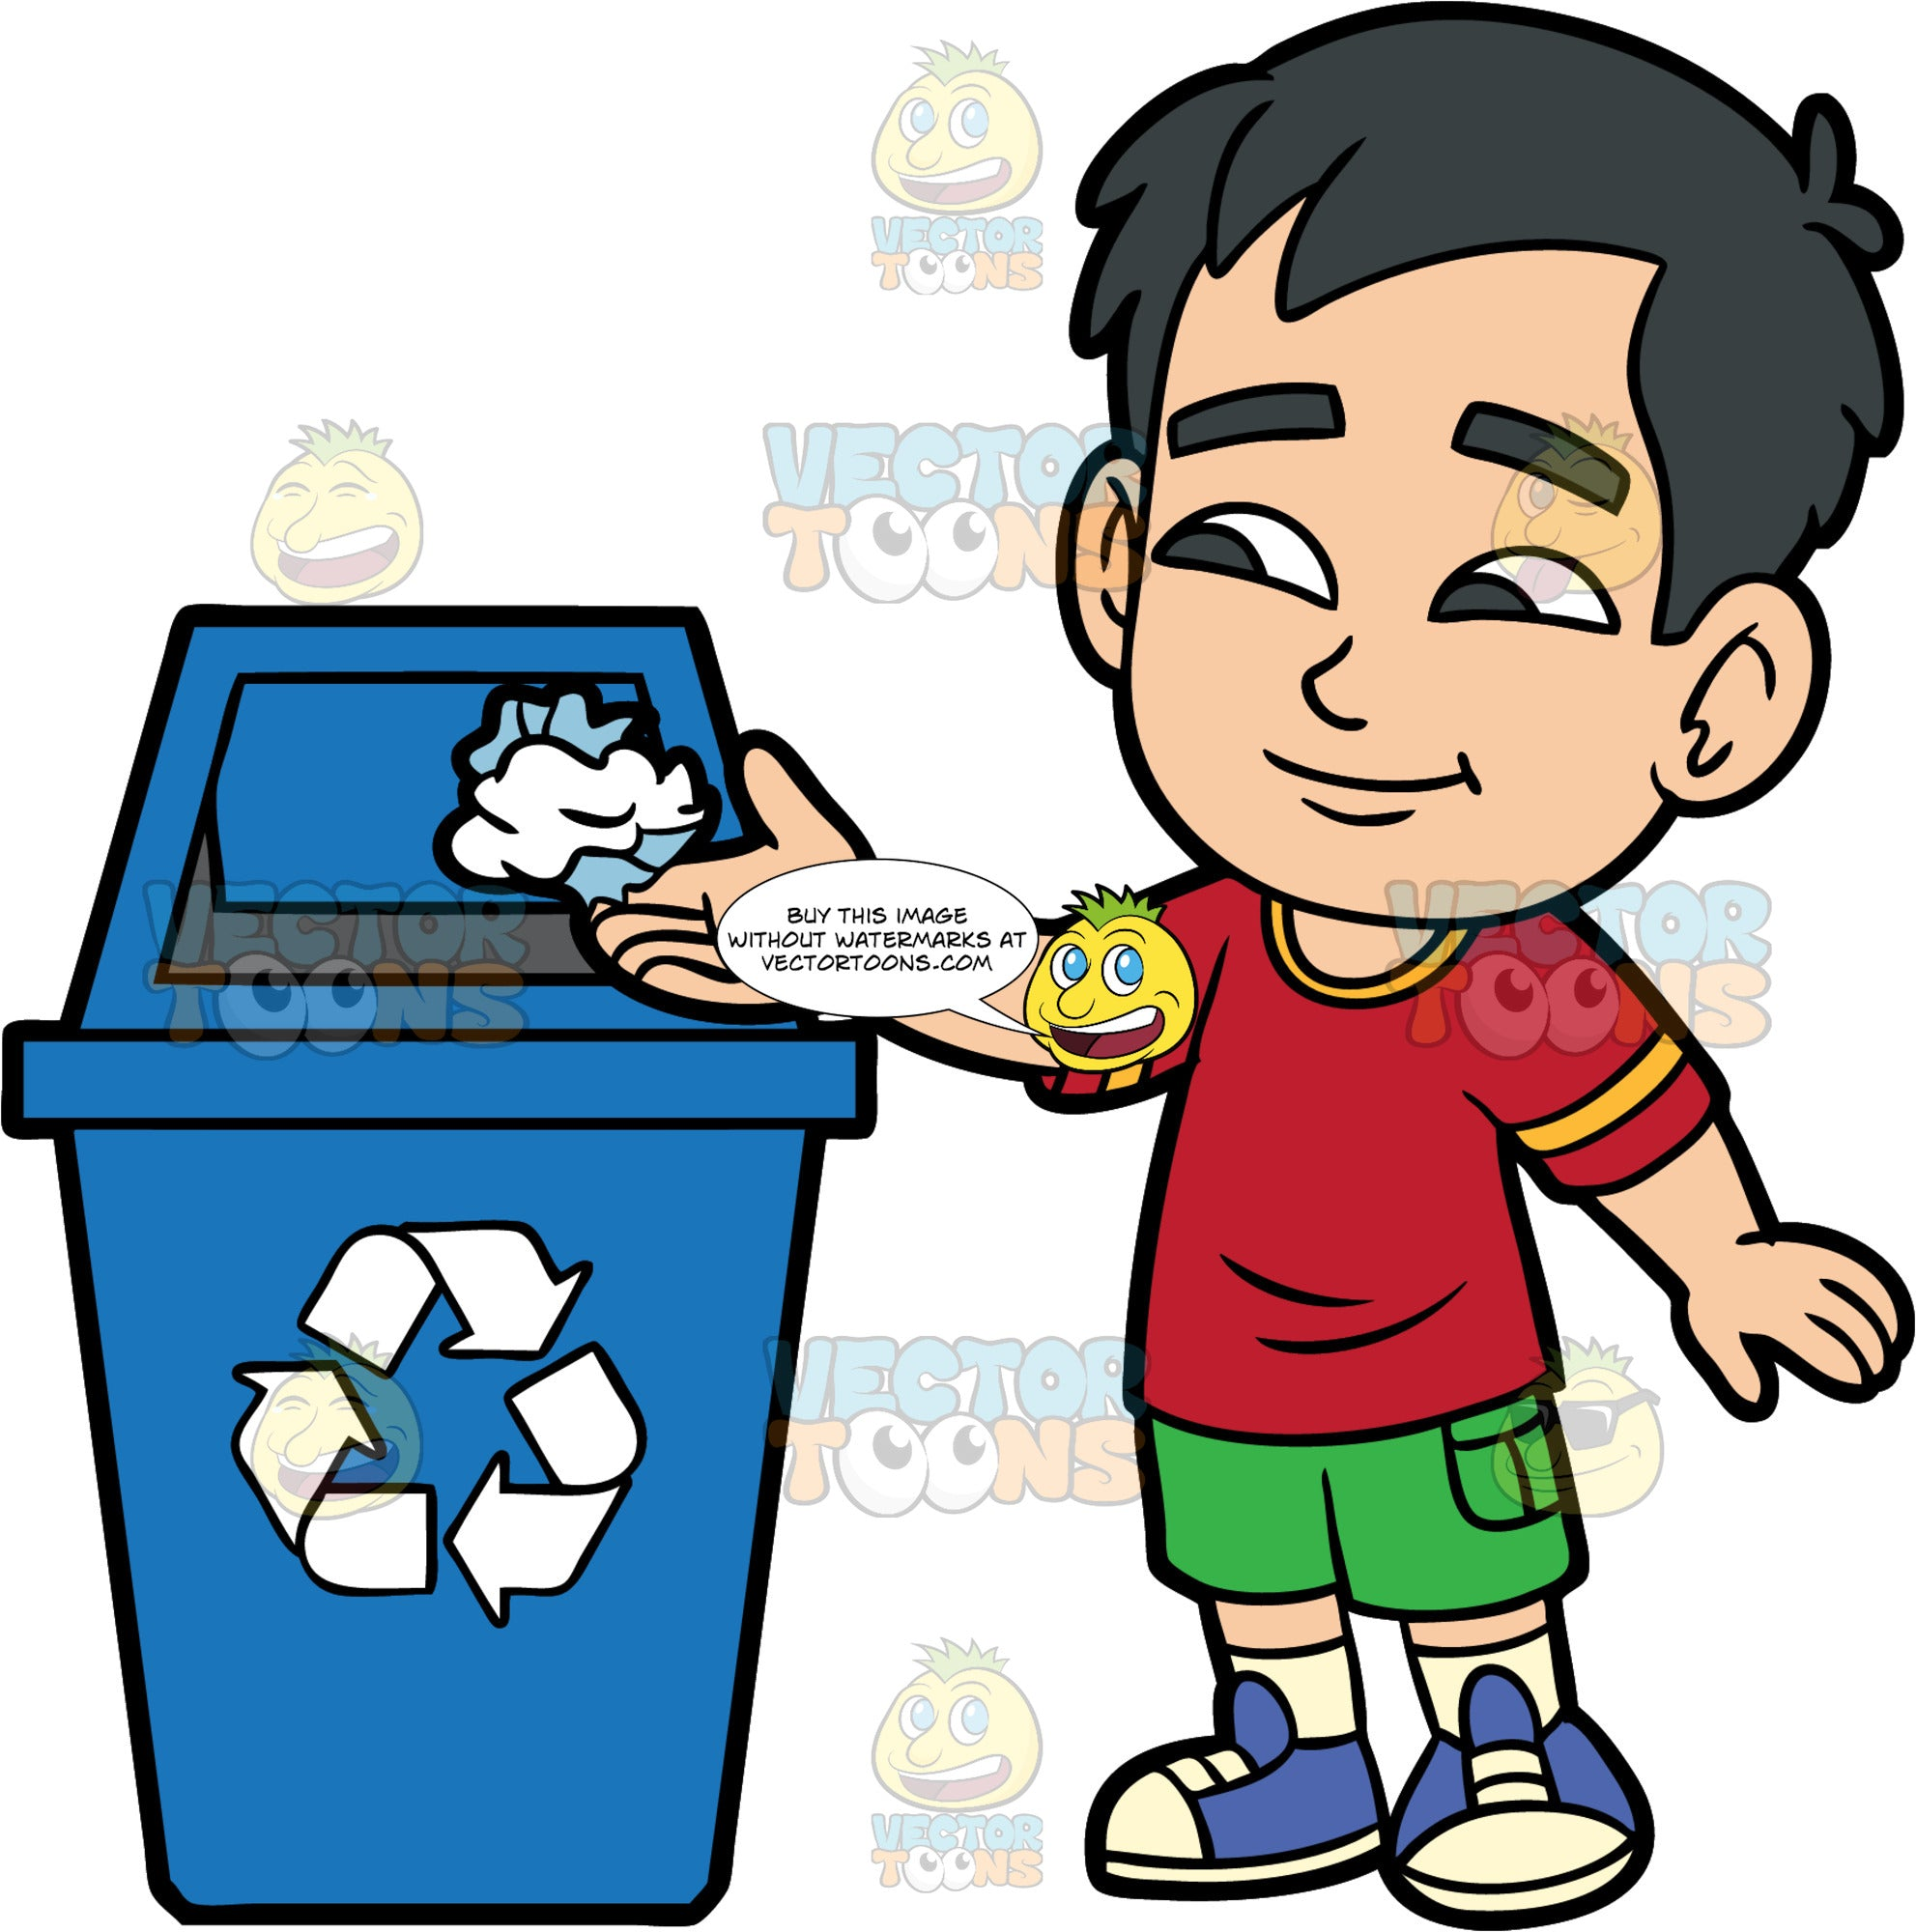 Young Kevin Throwing Paper Into A Recycling Bin. An Asian boy wearing green shorts, a red shirt, and blue shoes, throwing a piece of crumpled up paper into a large blue bin with a recycling logo on it